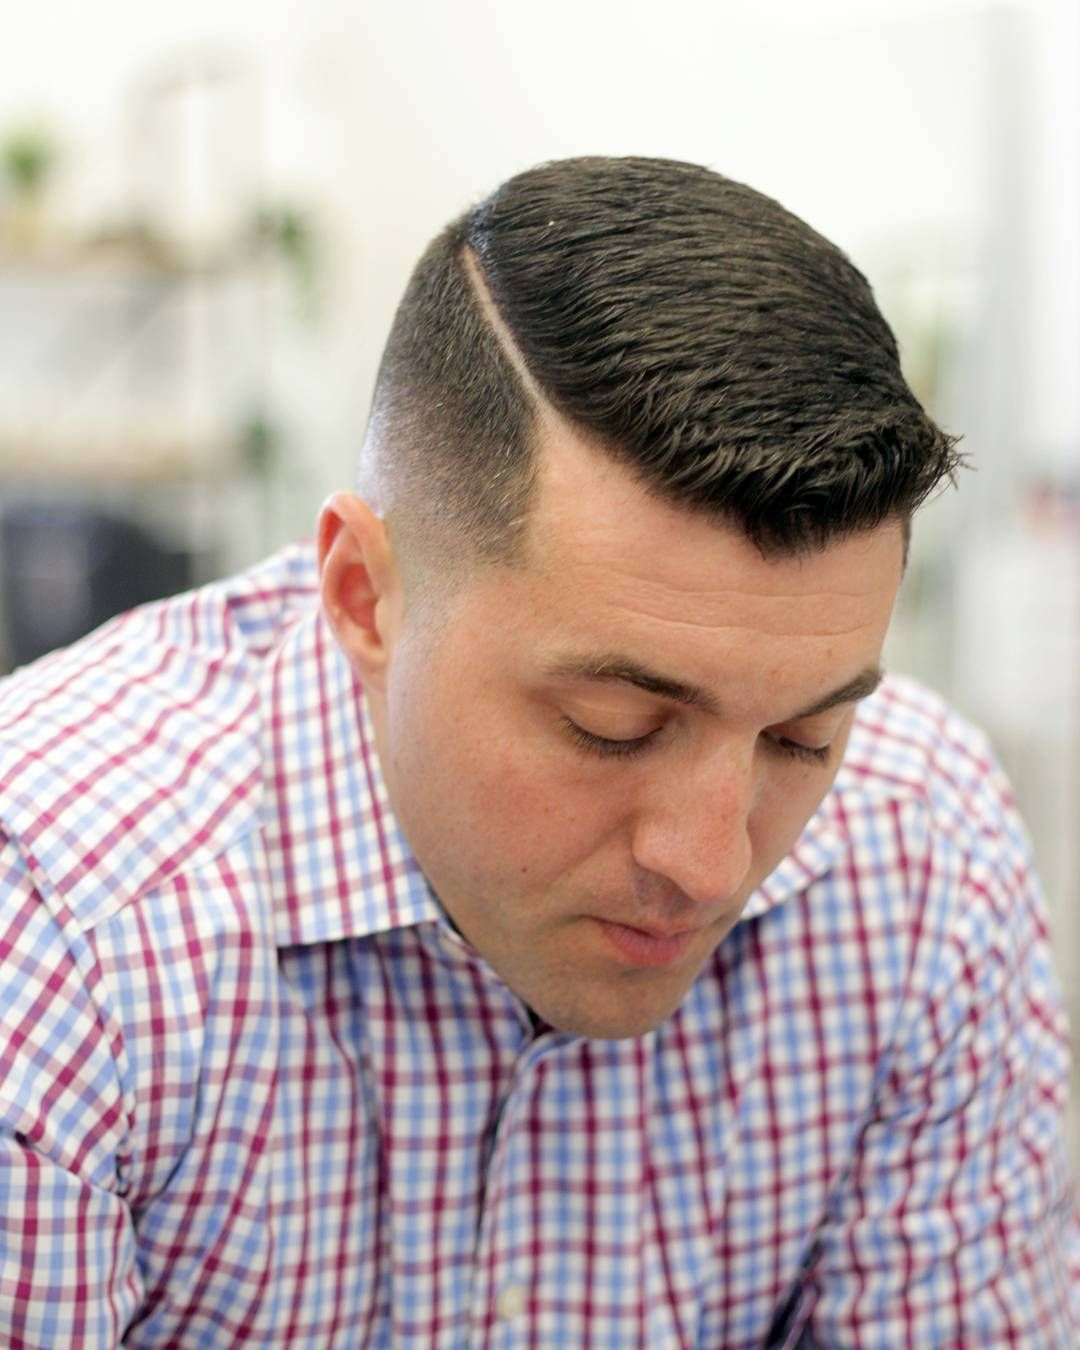 The Gentleman Haircut 21 Great Looking Styles To Try Out Gentleman Haircut Hard Part Haircut Mens Haircuts Fade